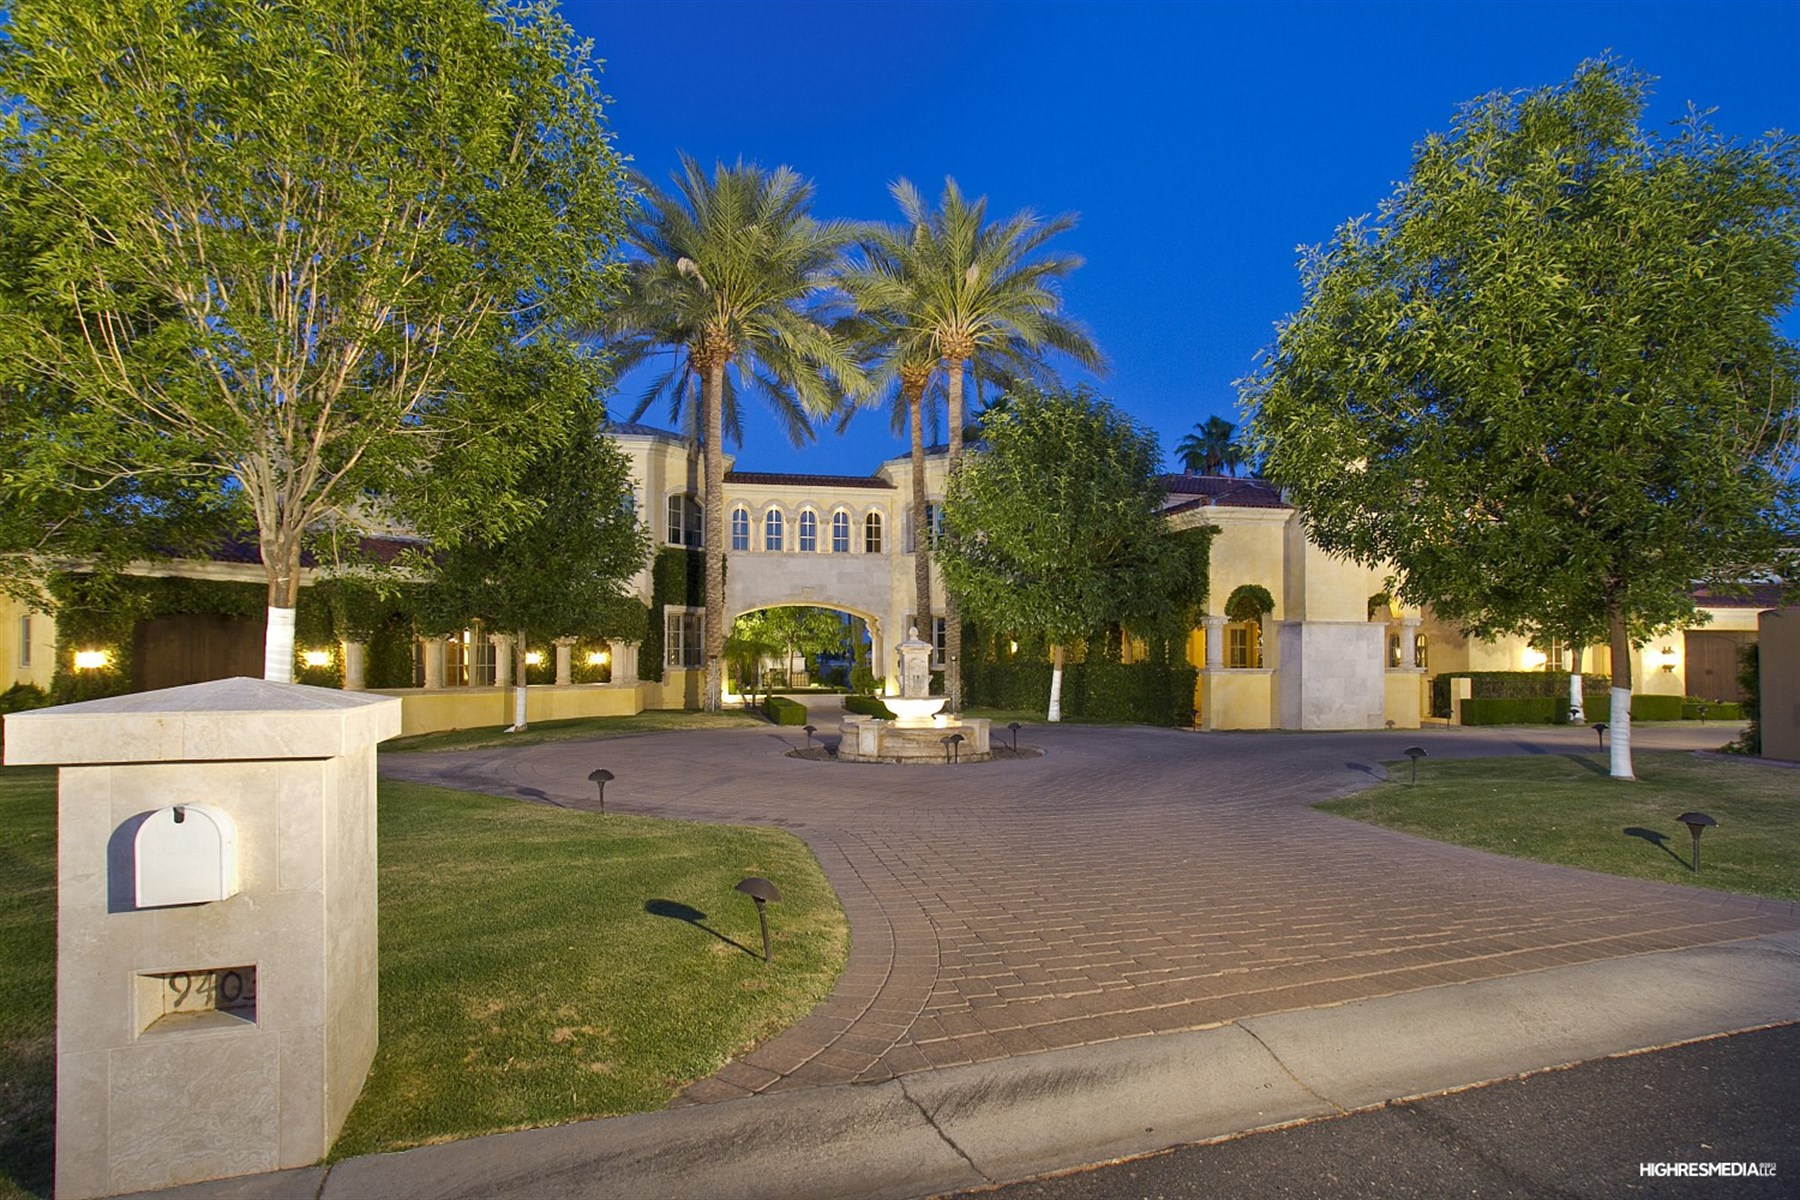 Casa para uma família para Venda às Classic Mediterranean Design Grand Estate on the golf course. 9403 N 55 ST Paradise Valley, Arizona, 85253 Estados Unidos